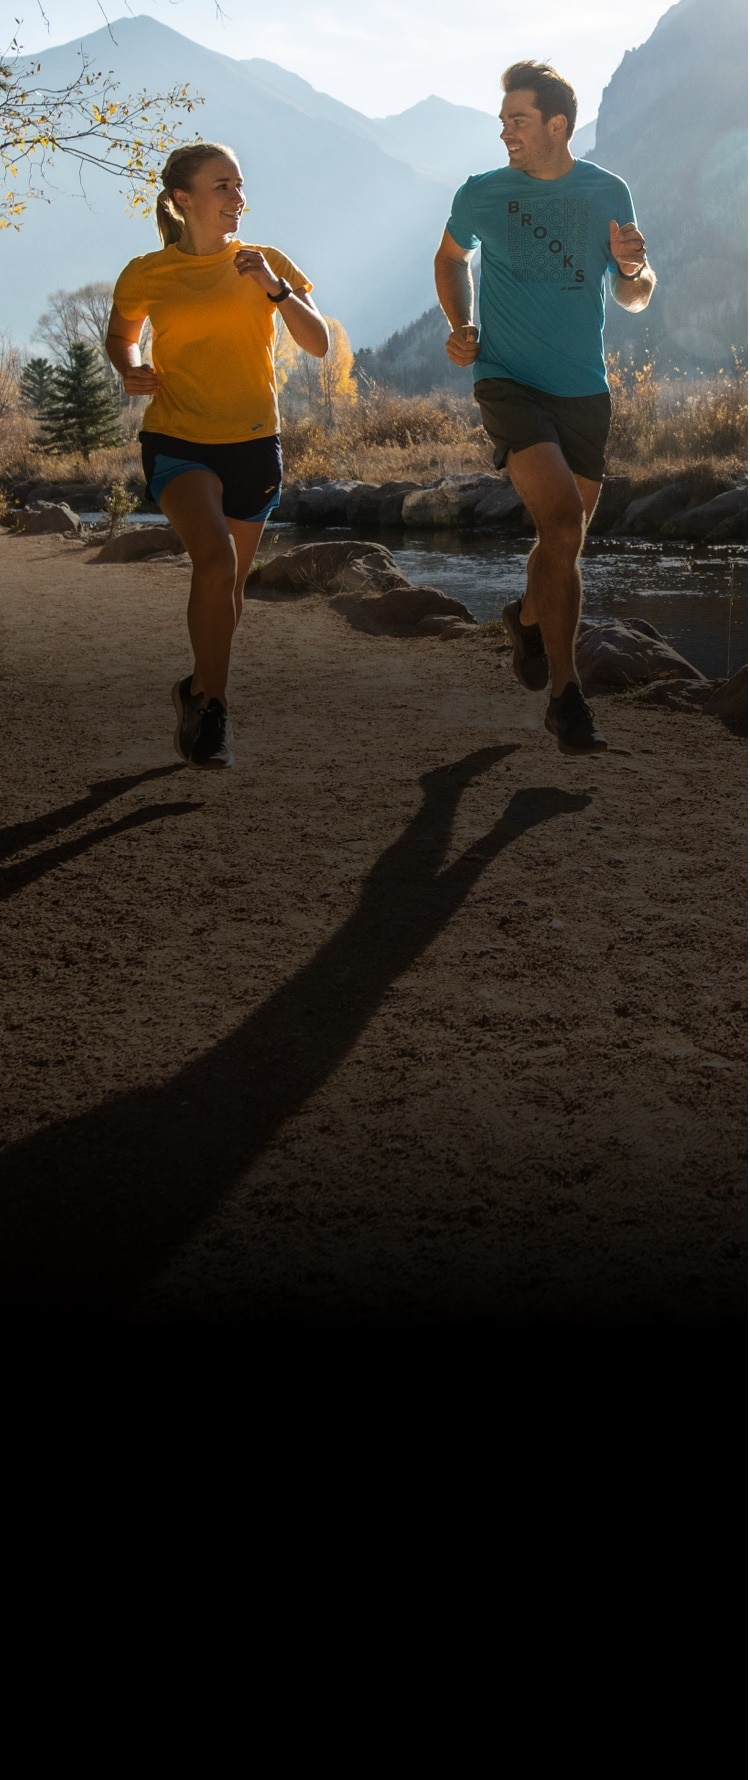 Two runners on a trail